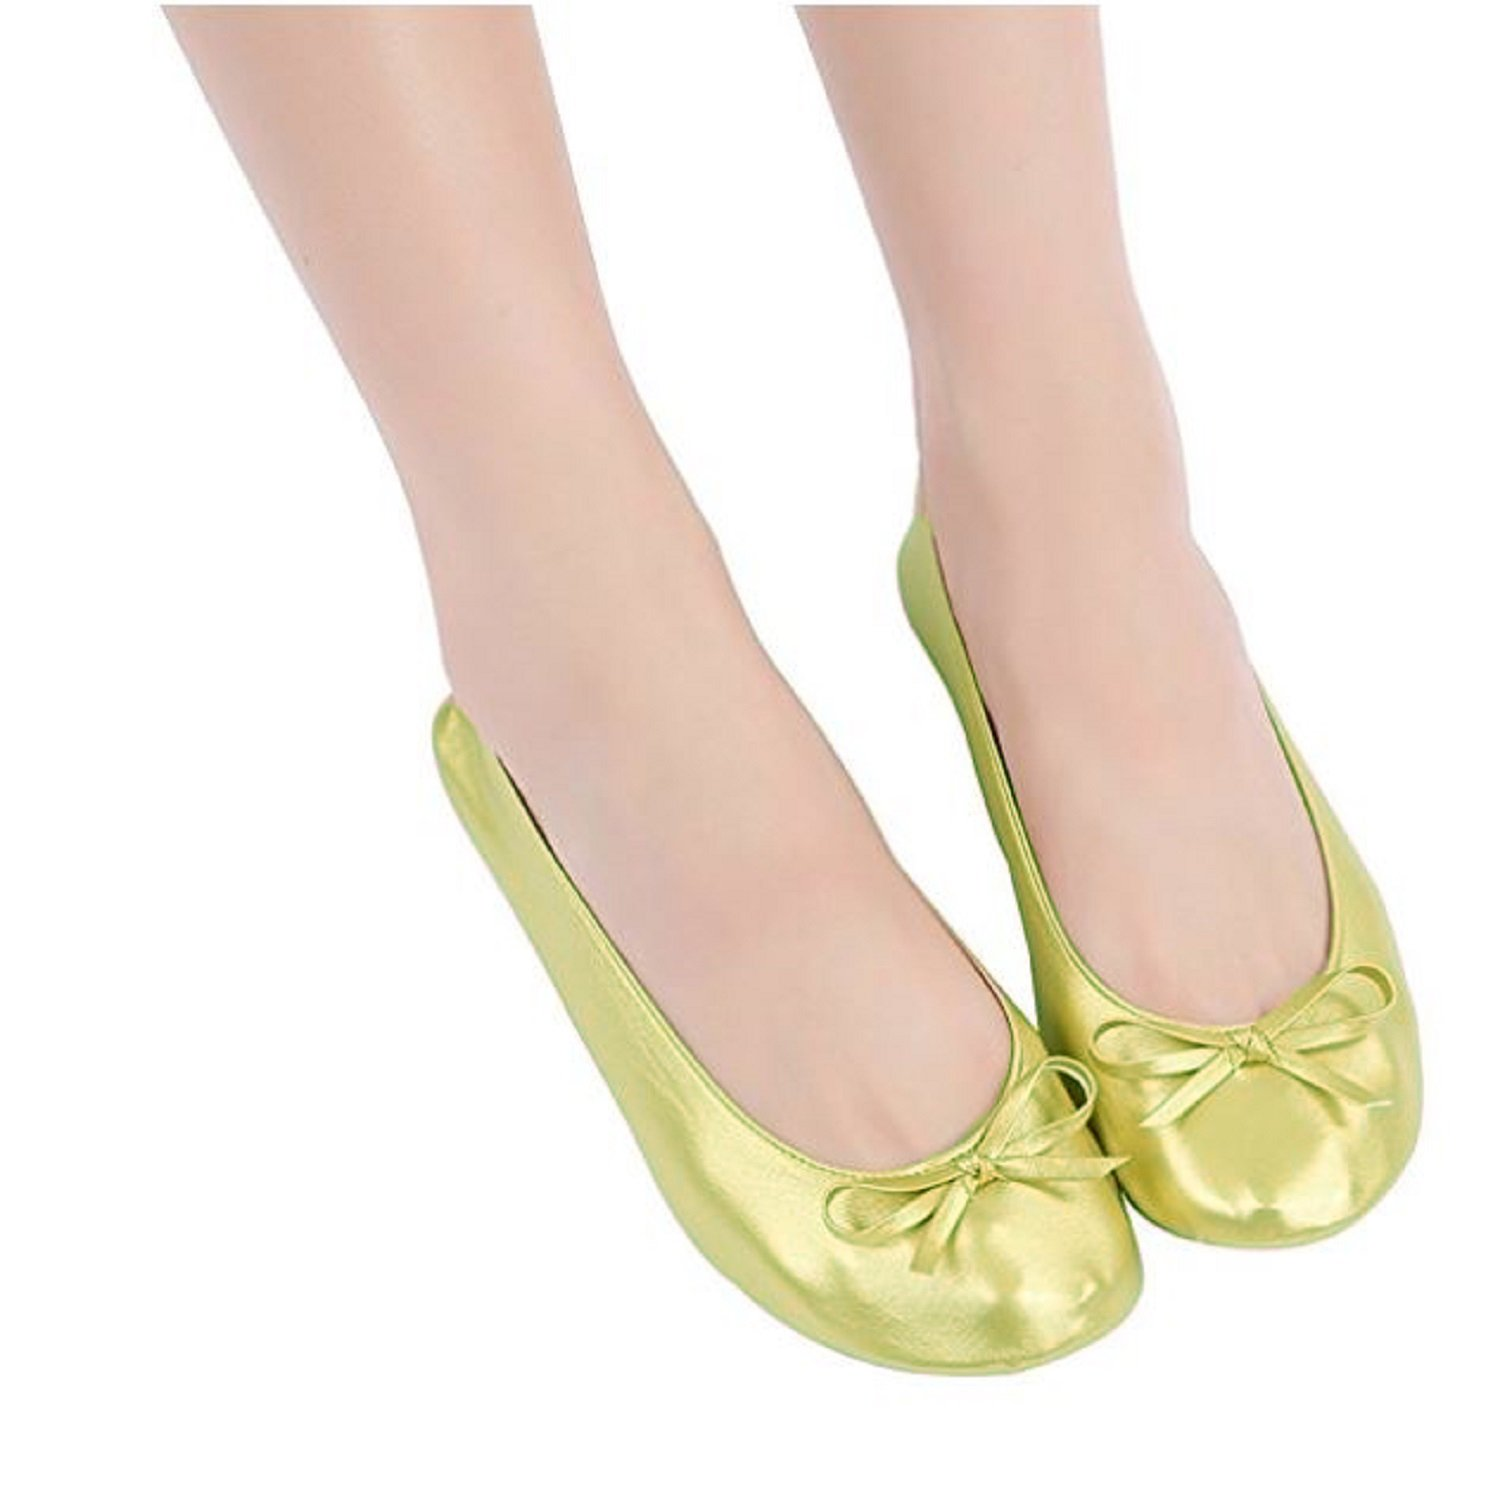 Foldable Flat Ballet Shoes with Expandable Tote Bag for Carrying High Heels Folding Portable Travel Gold Shoes Plus Sizes Shoes 5 to 12 Shoes That fold up. (Medium = 7 up to 8)